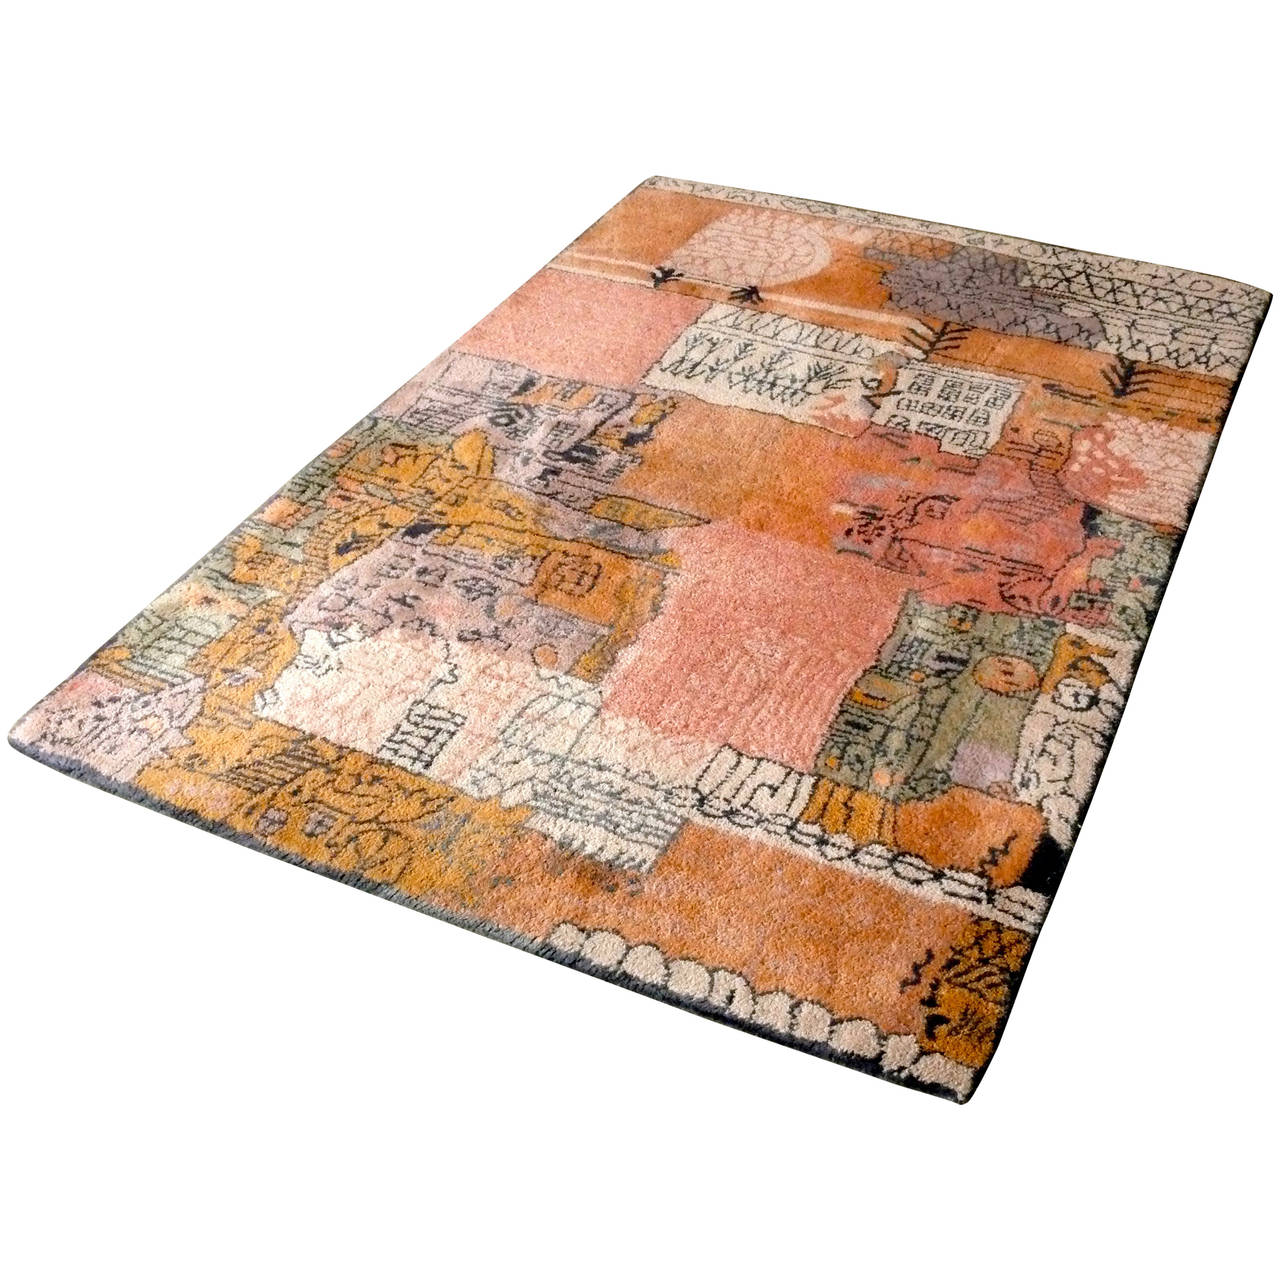 Wool Rug For Paul Klee Collection By Ege At 1stdibs